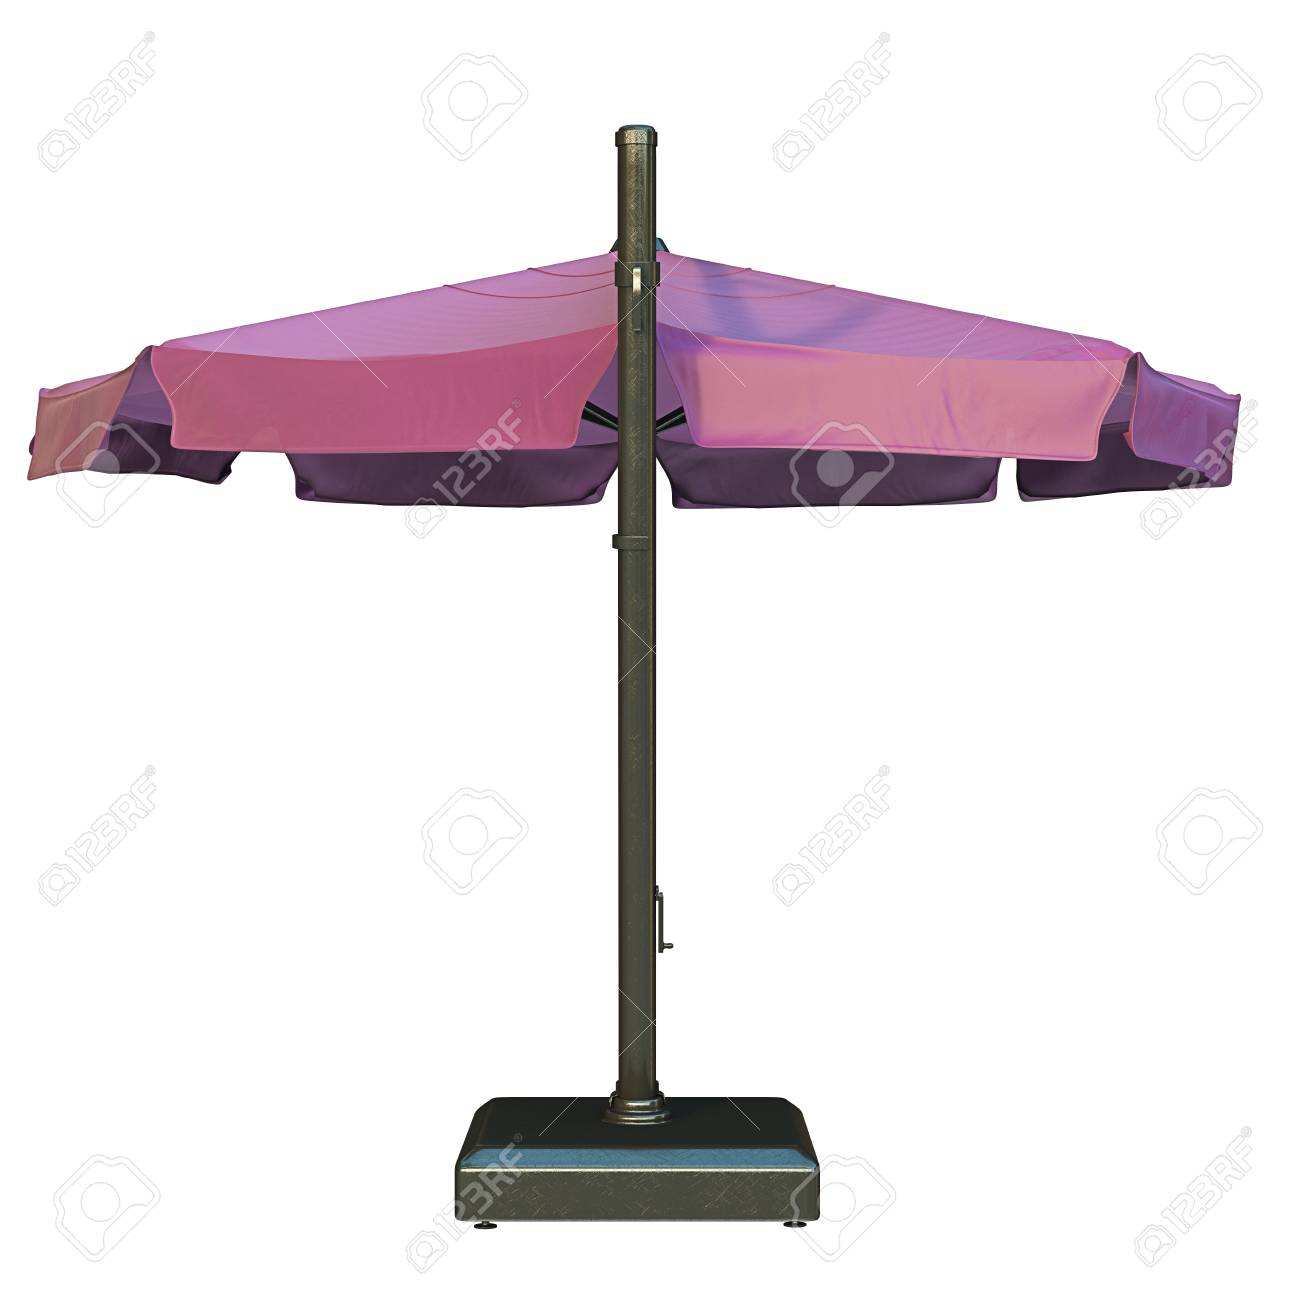 Sun Umbrella For Relax Back View 3d Graphic Stock Photo Picture